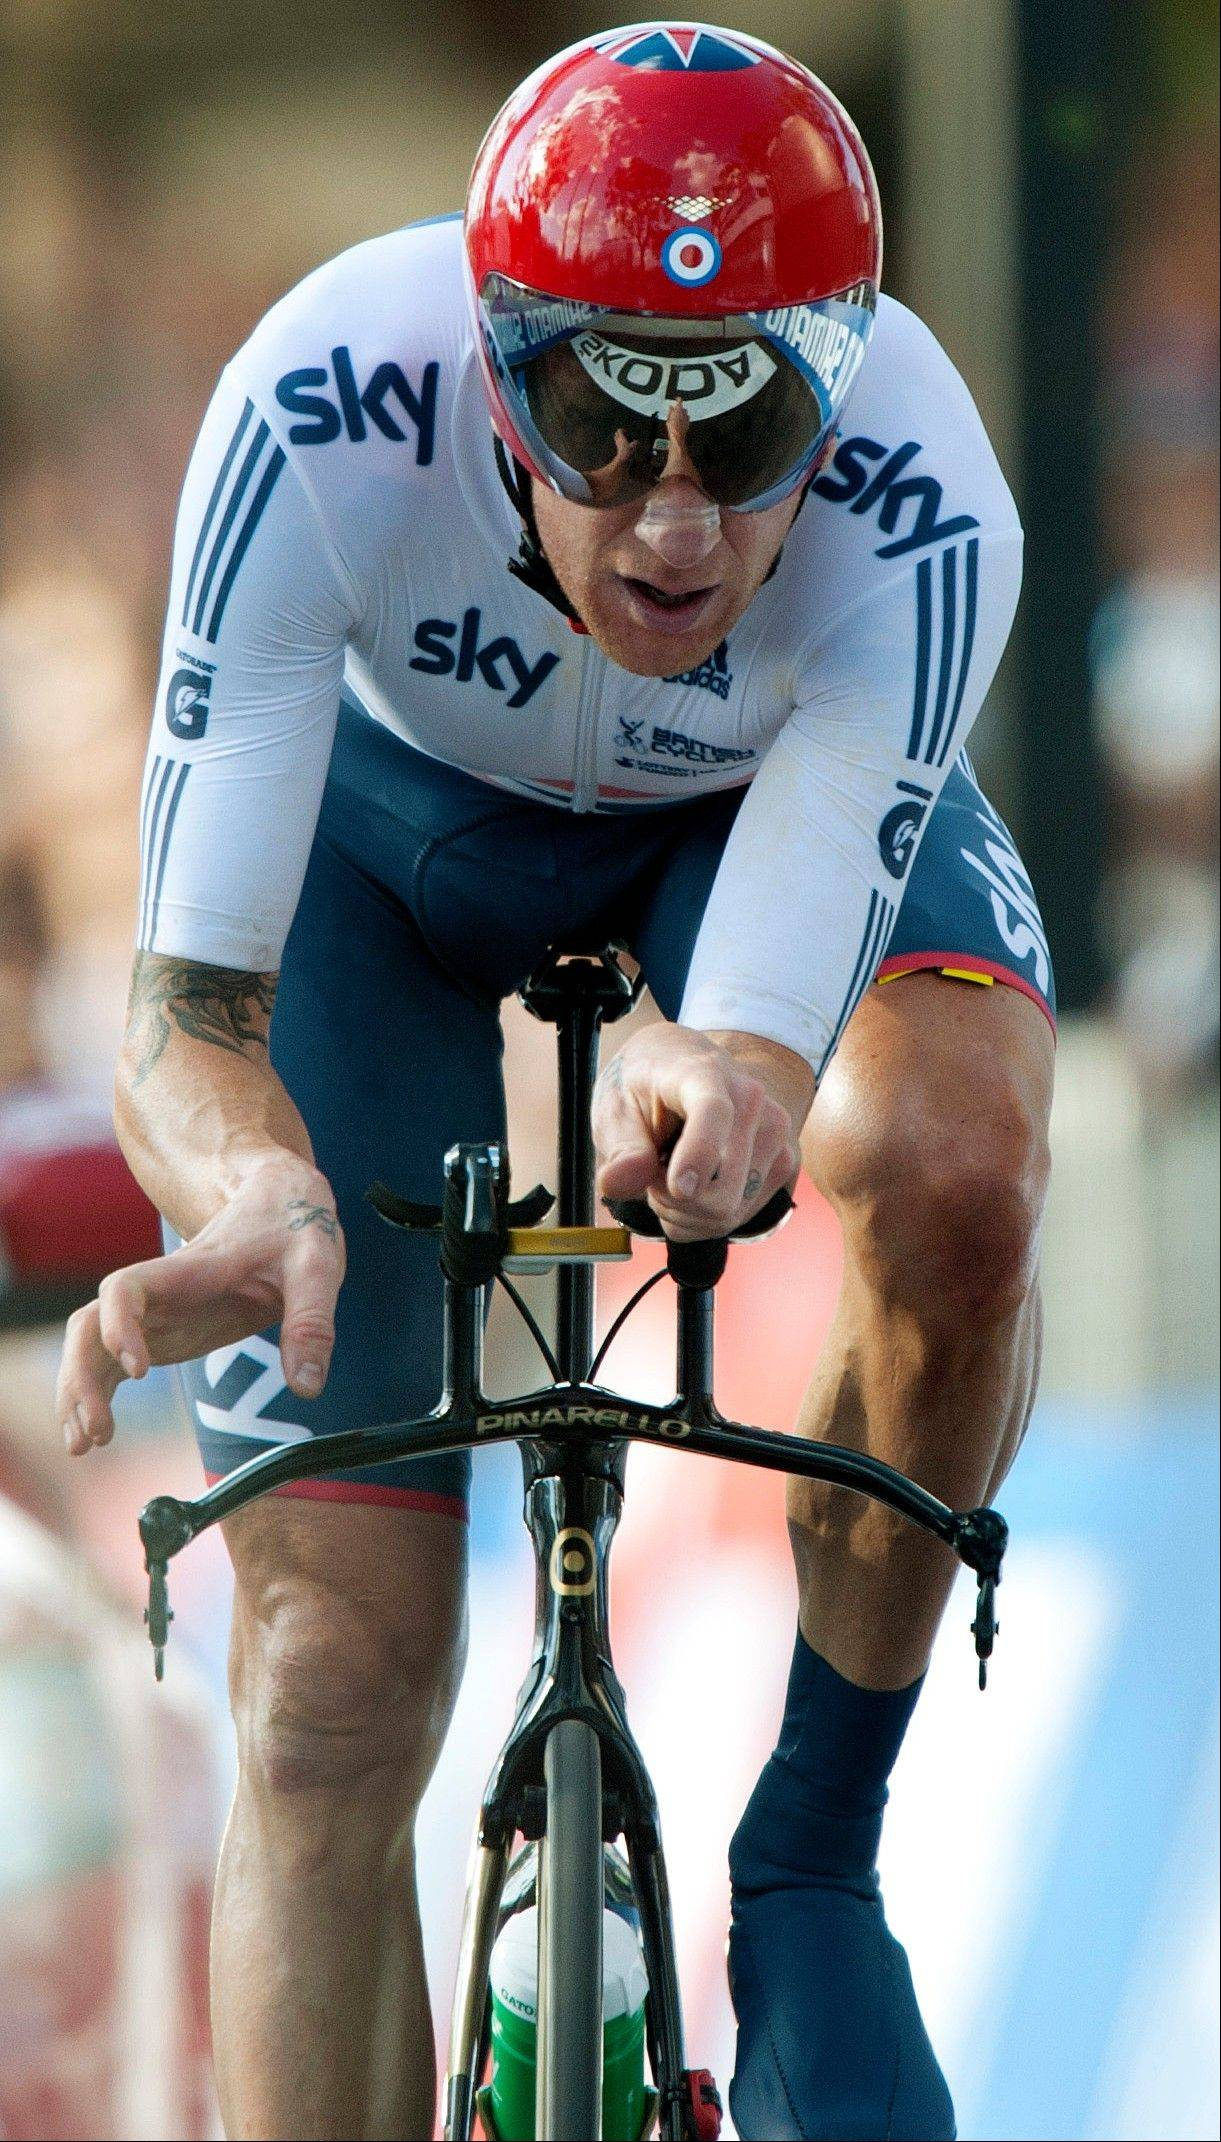 British cyclist Bradley Wiggins crosses the finish line to win the silver medal in the men's individual time trial event Wednesday at the road cycling world championships in Florence, Italy.